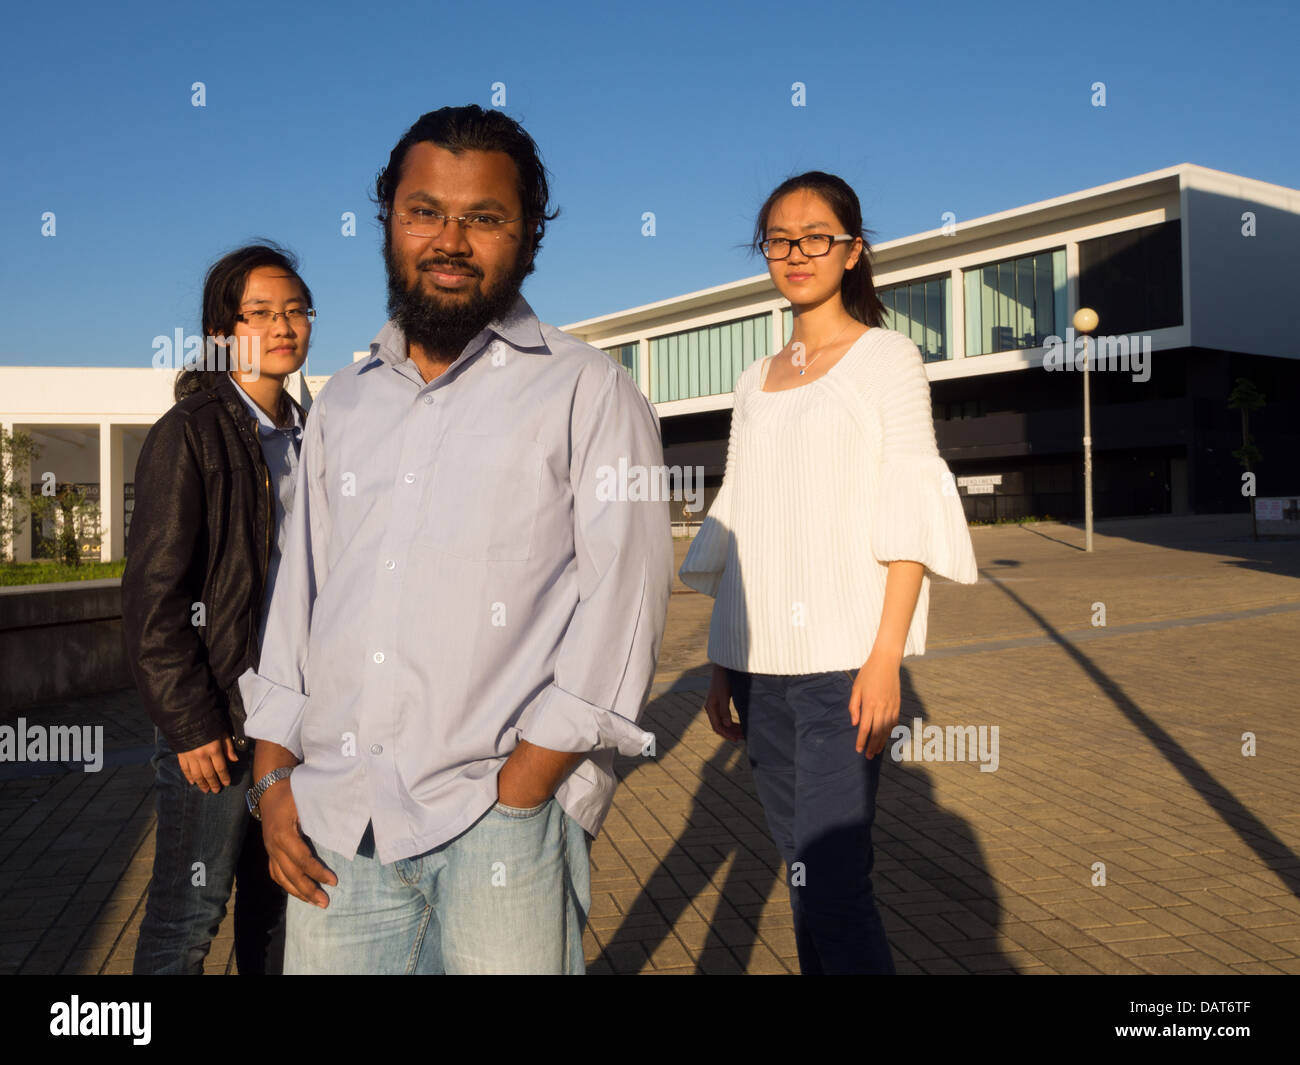 Group of multi ethnic people - Stock Image